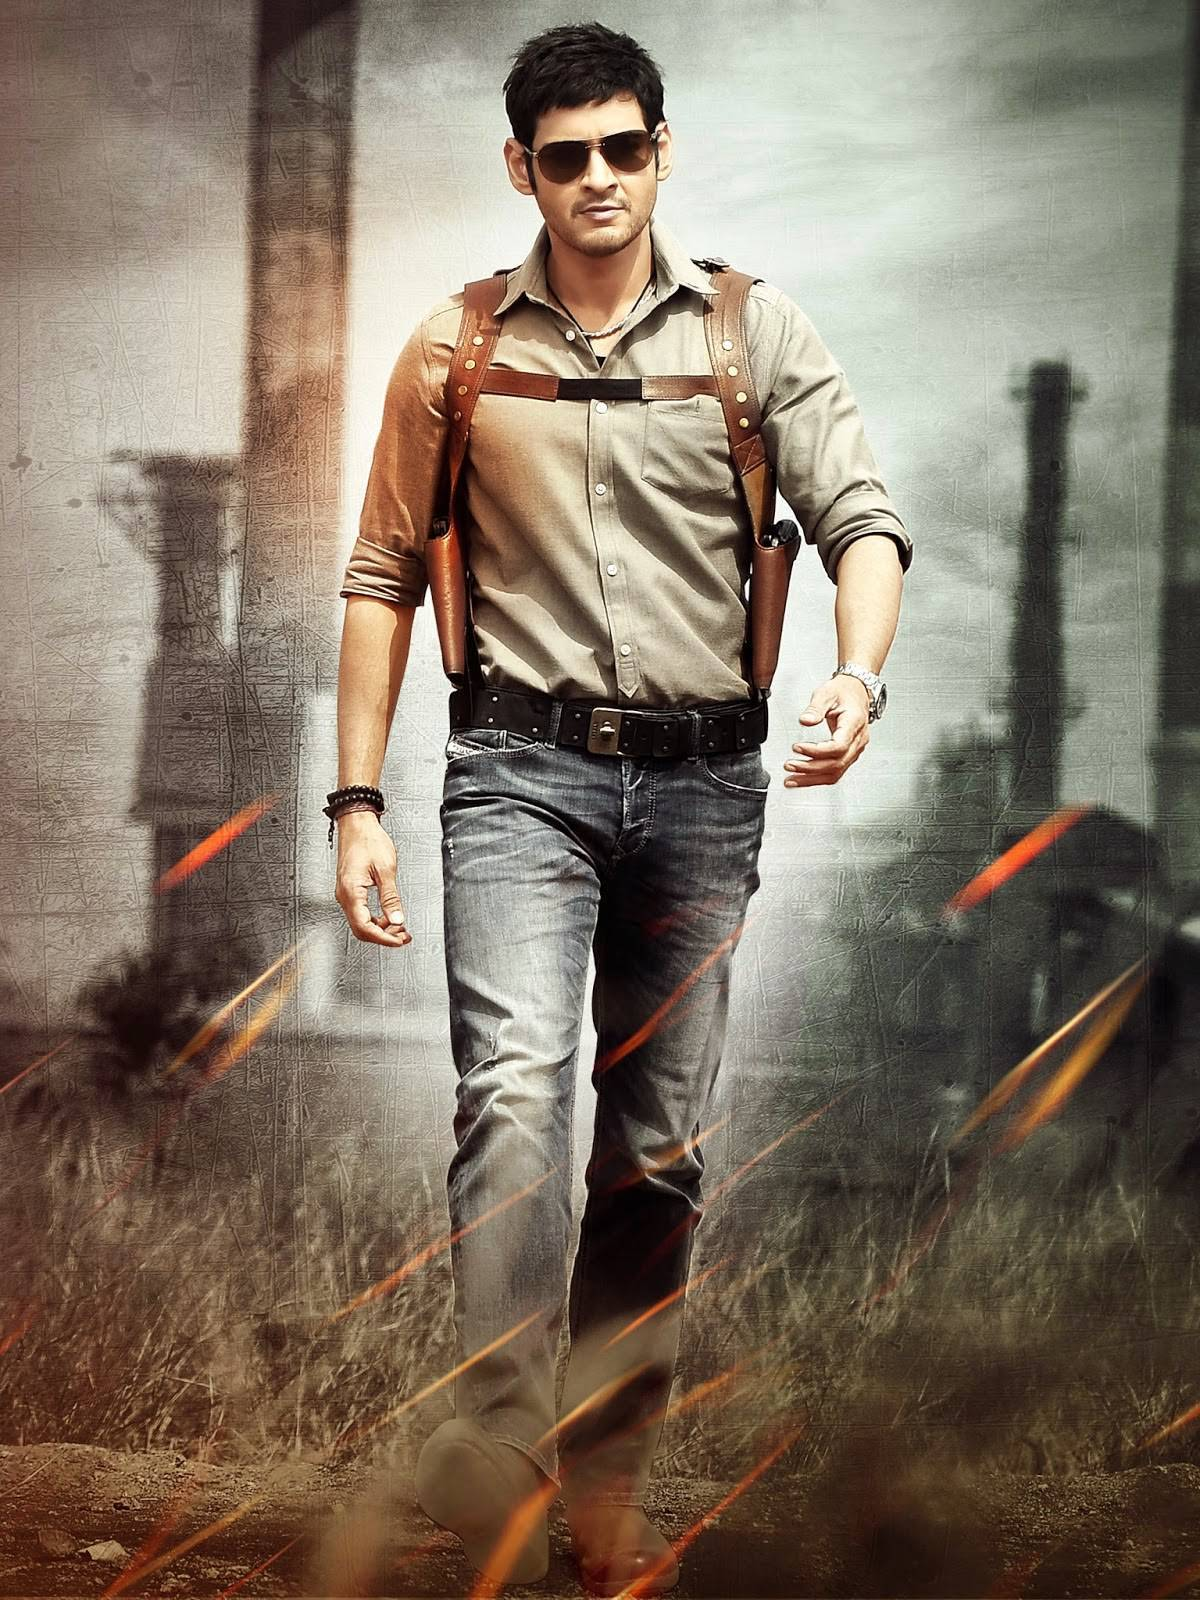 Mahesh Babu Aagadu hd Wallpapers hd New Photos Mahesh Babu